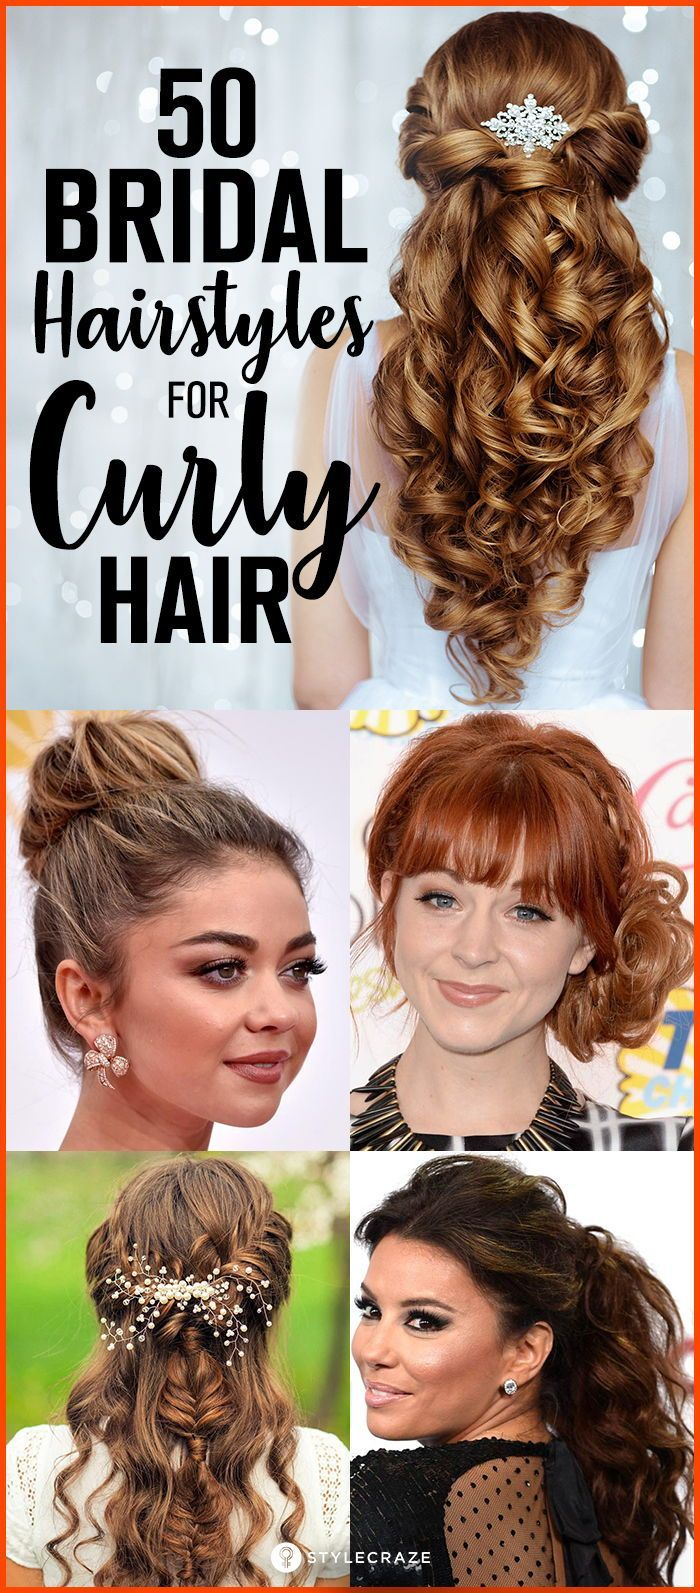 50 Simple Bridal Hairstyles For Curly Hair Who Doesn T Want To